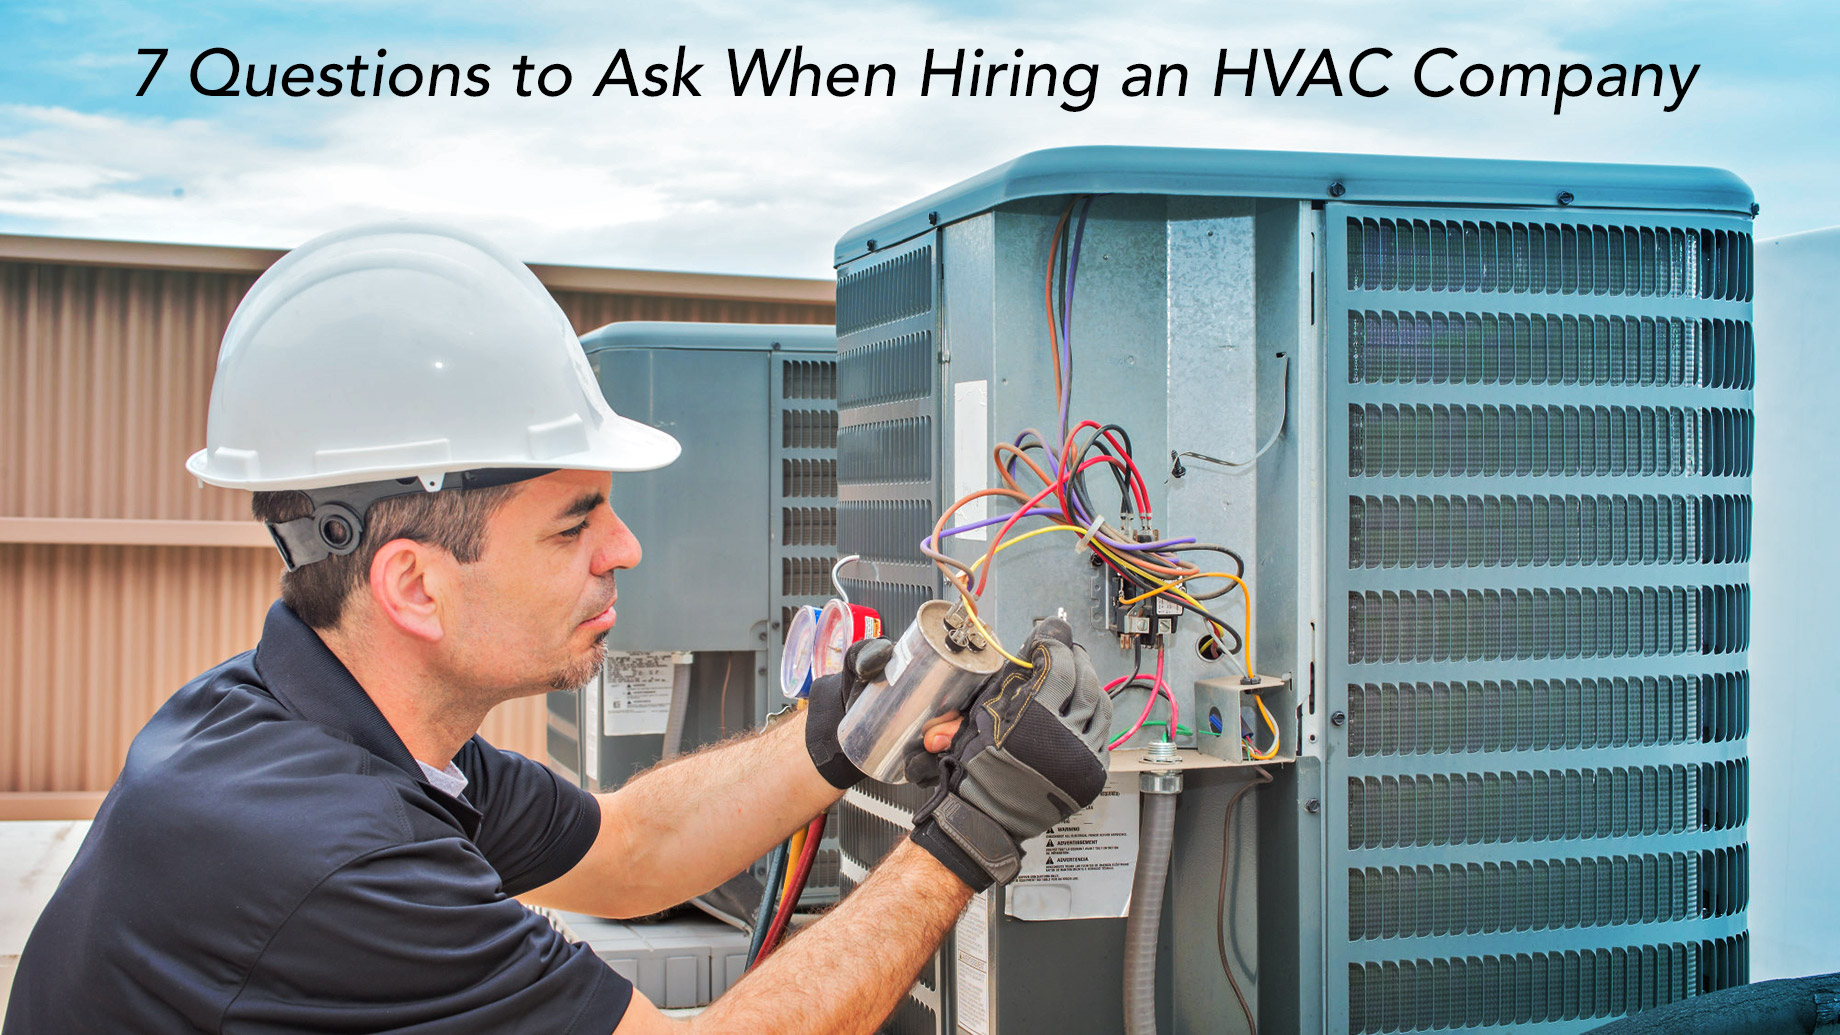 7 Questions to Ask When Hiring an HVAC Company